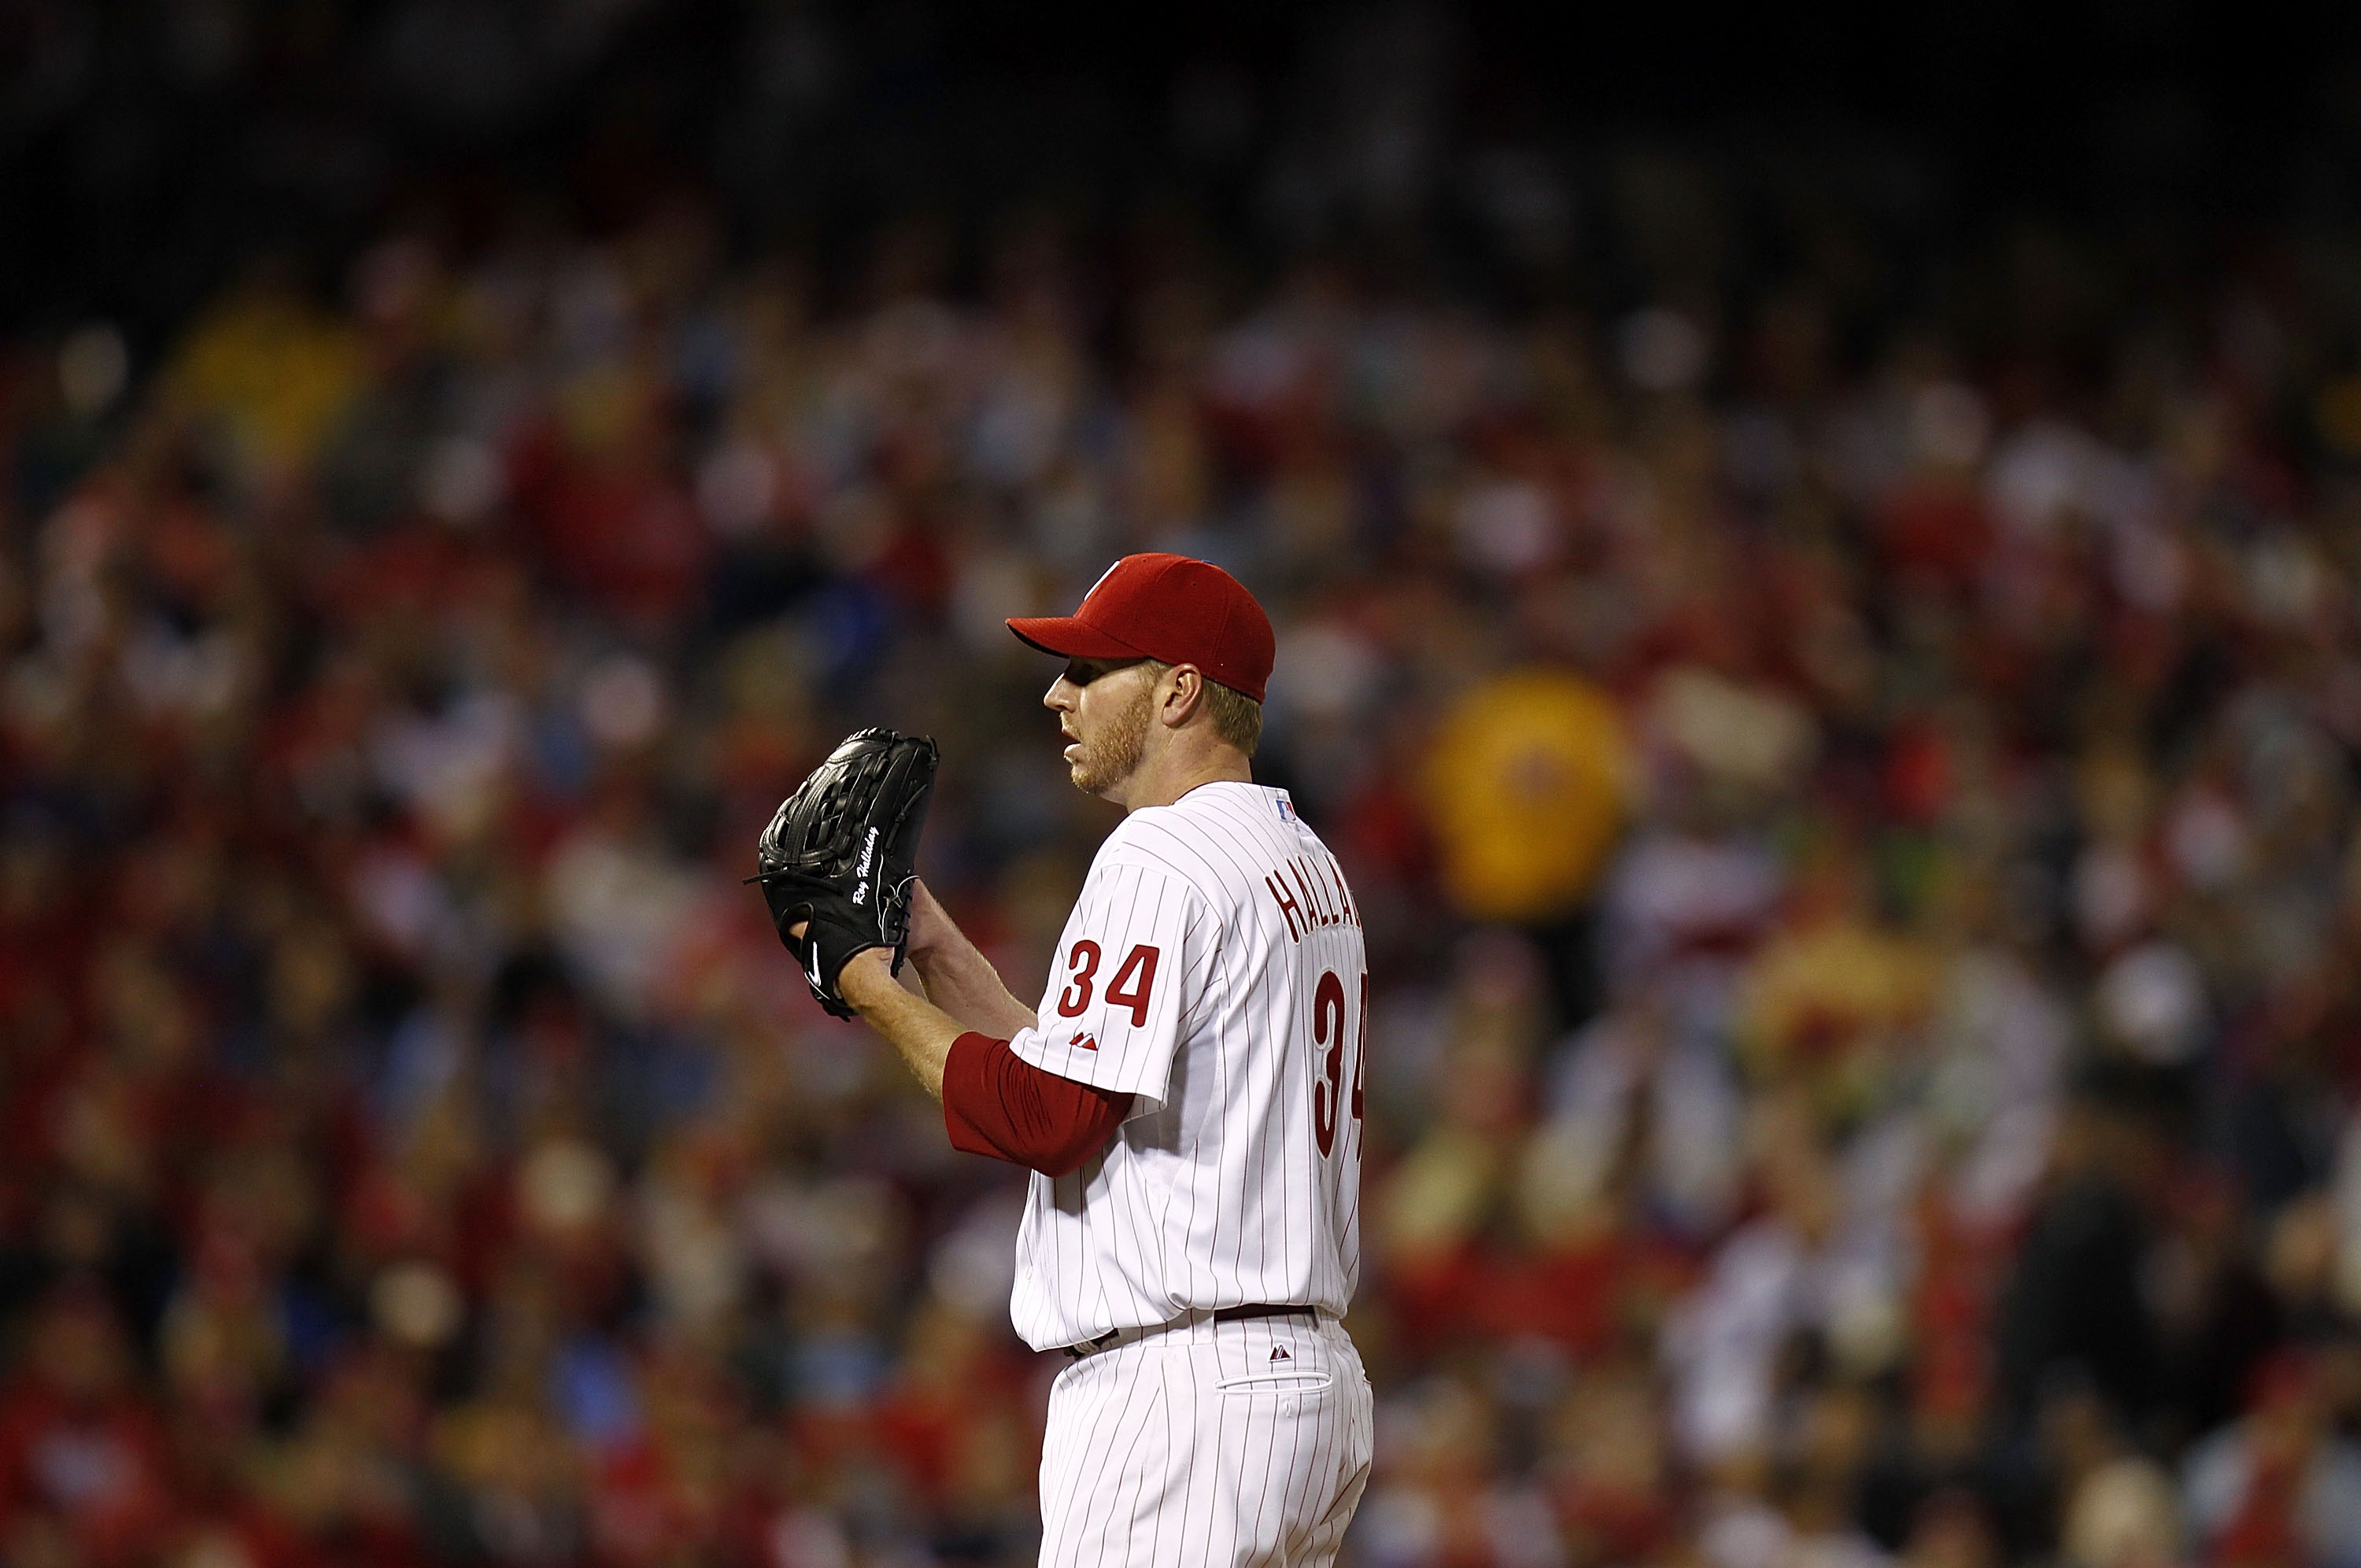 PHILADELPHIA - OCTOBER 06:  Roy Halladay #34 of the Philadelphia Phillies delivers in Game 1 of the NLDS against the Cincinnati Reds at Citizens Bank Park on October 6, 2010 in Philadelphia, Pennsylvania.  (Photo by Jeff Zelevansky/Getty Images)